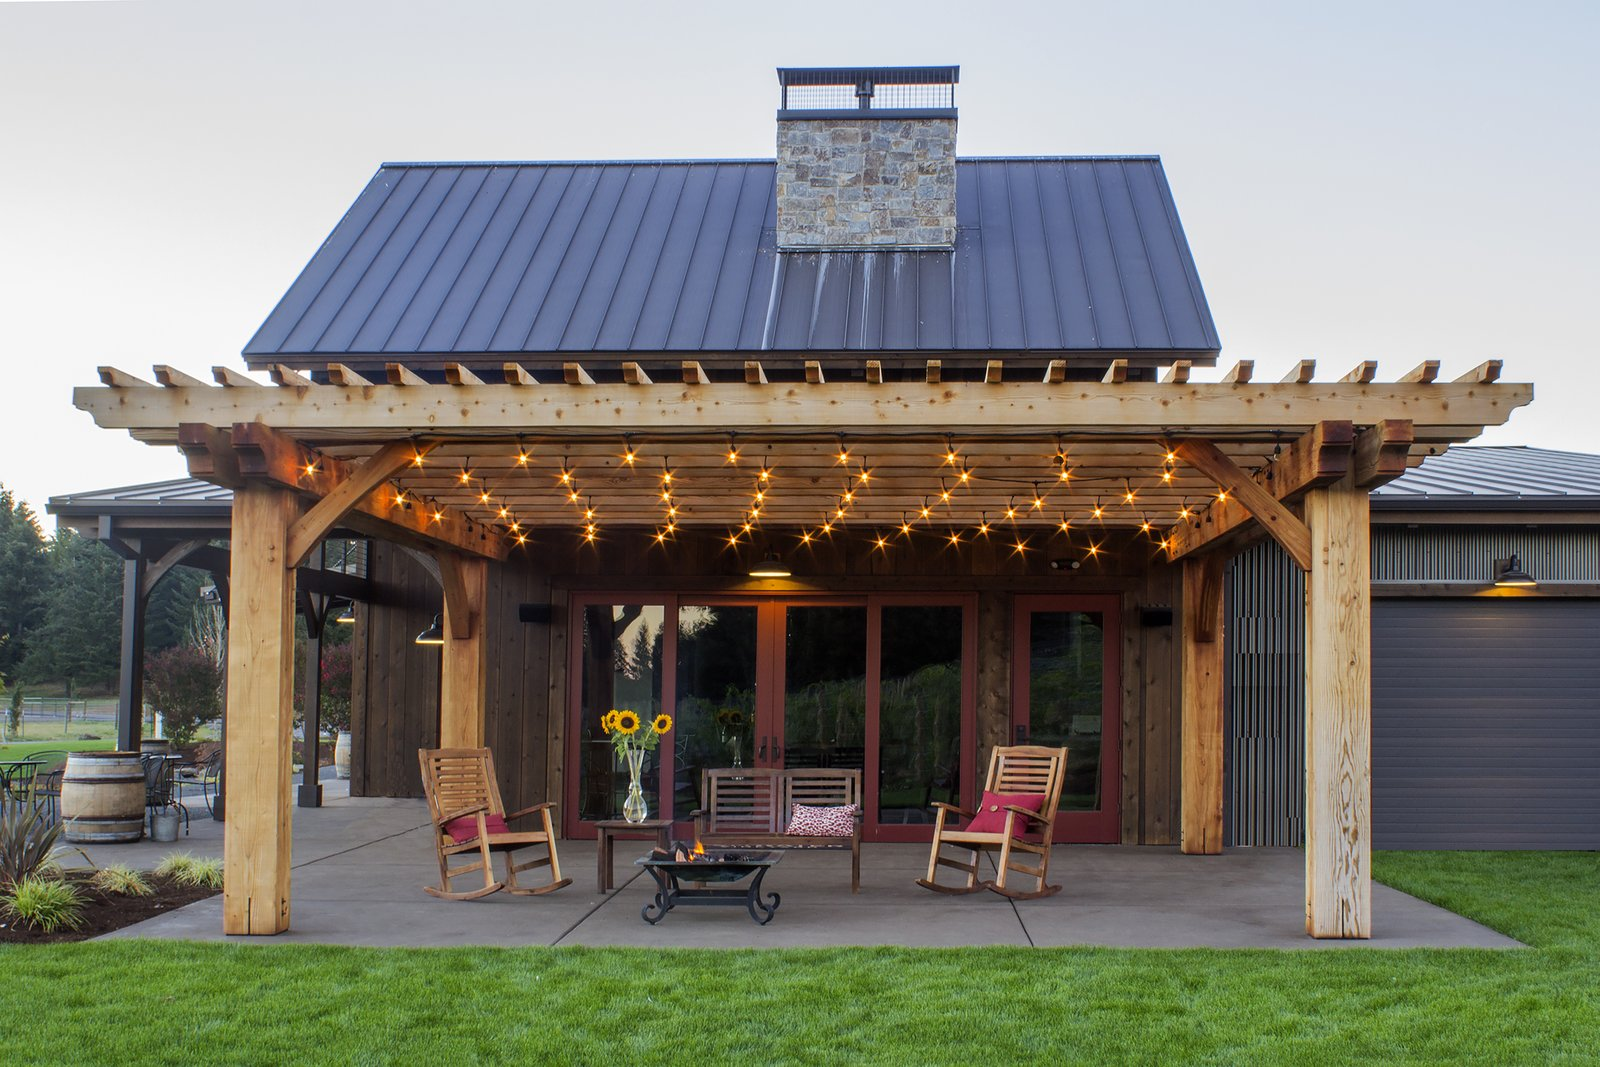 Naturally durable, redwood can be left to naturally weather. In rainy climates, the material will darken before turning a soft, driftwood gray.